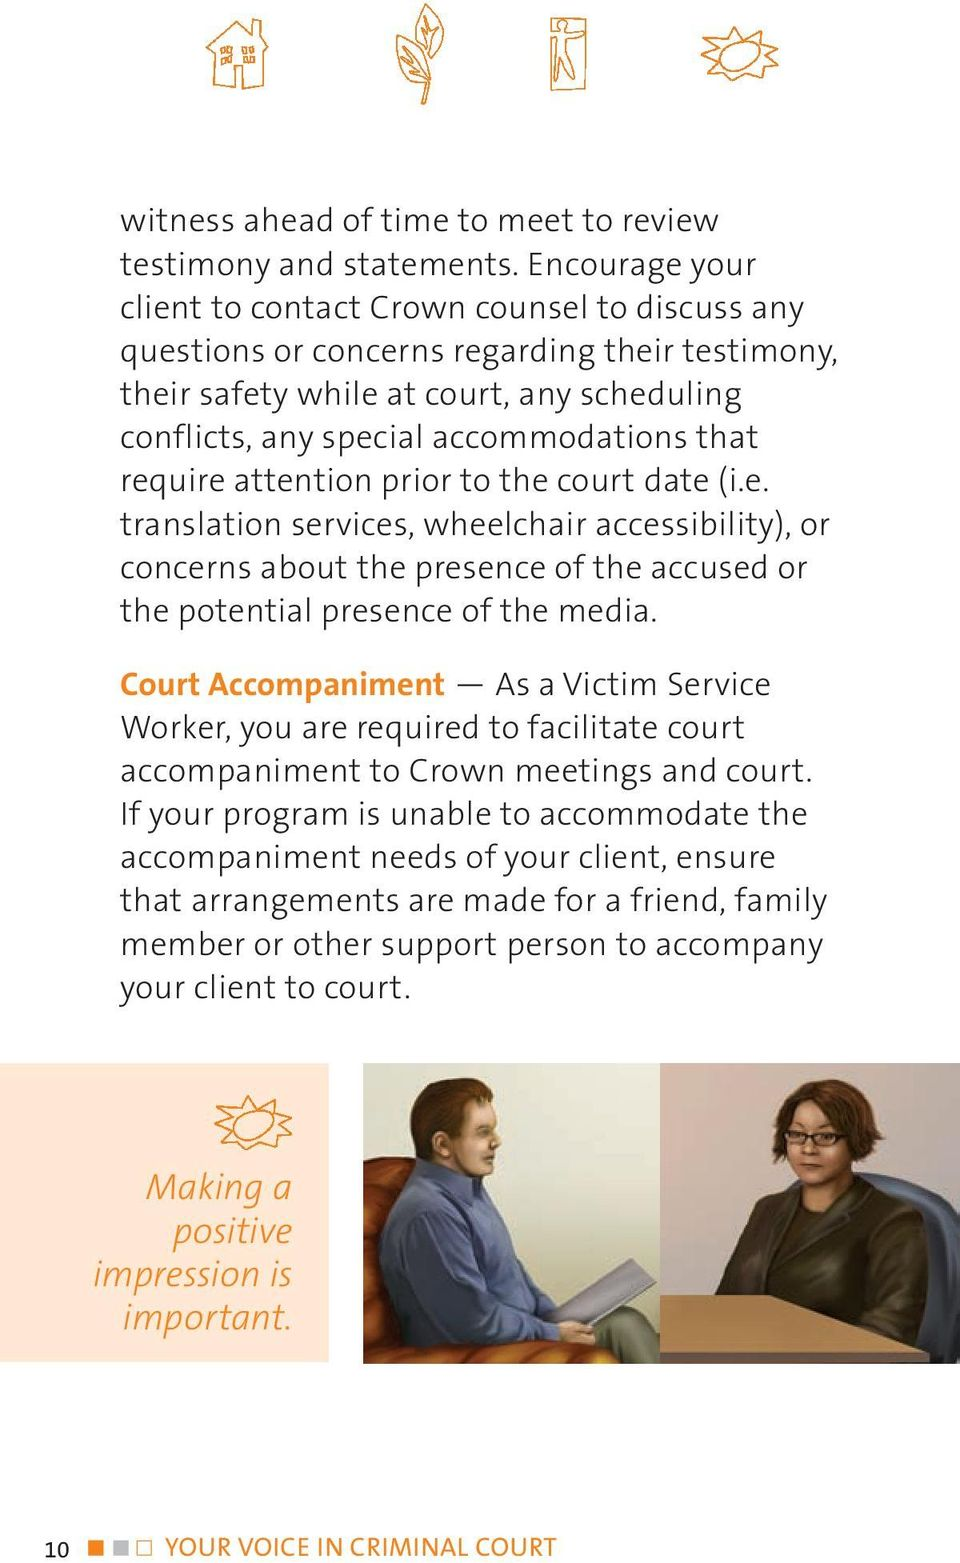 require attention prior to the court date (i.e. translation services, wheelchair accessibility), or concerns about the presence of the accused or the potential presence of the media.